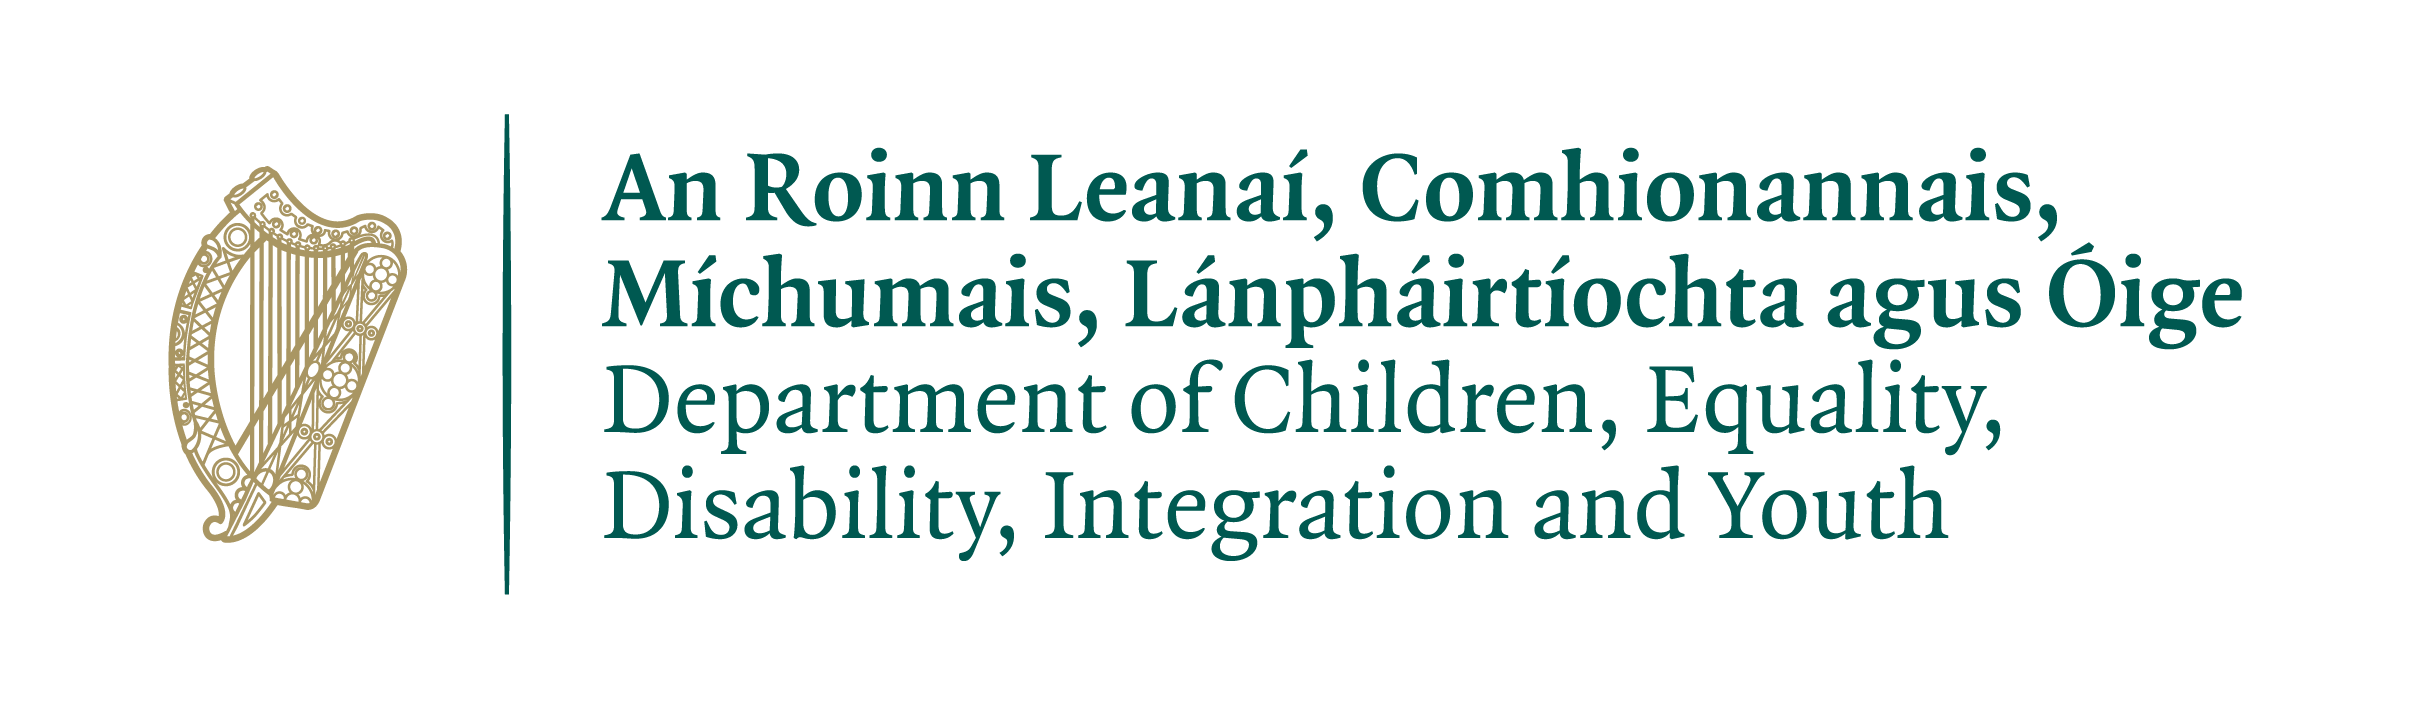 the-department-of-children-equality-disability-integration-and-youth